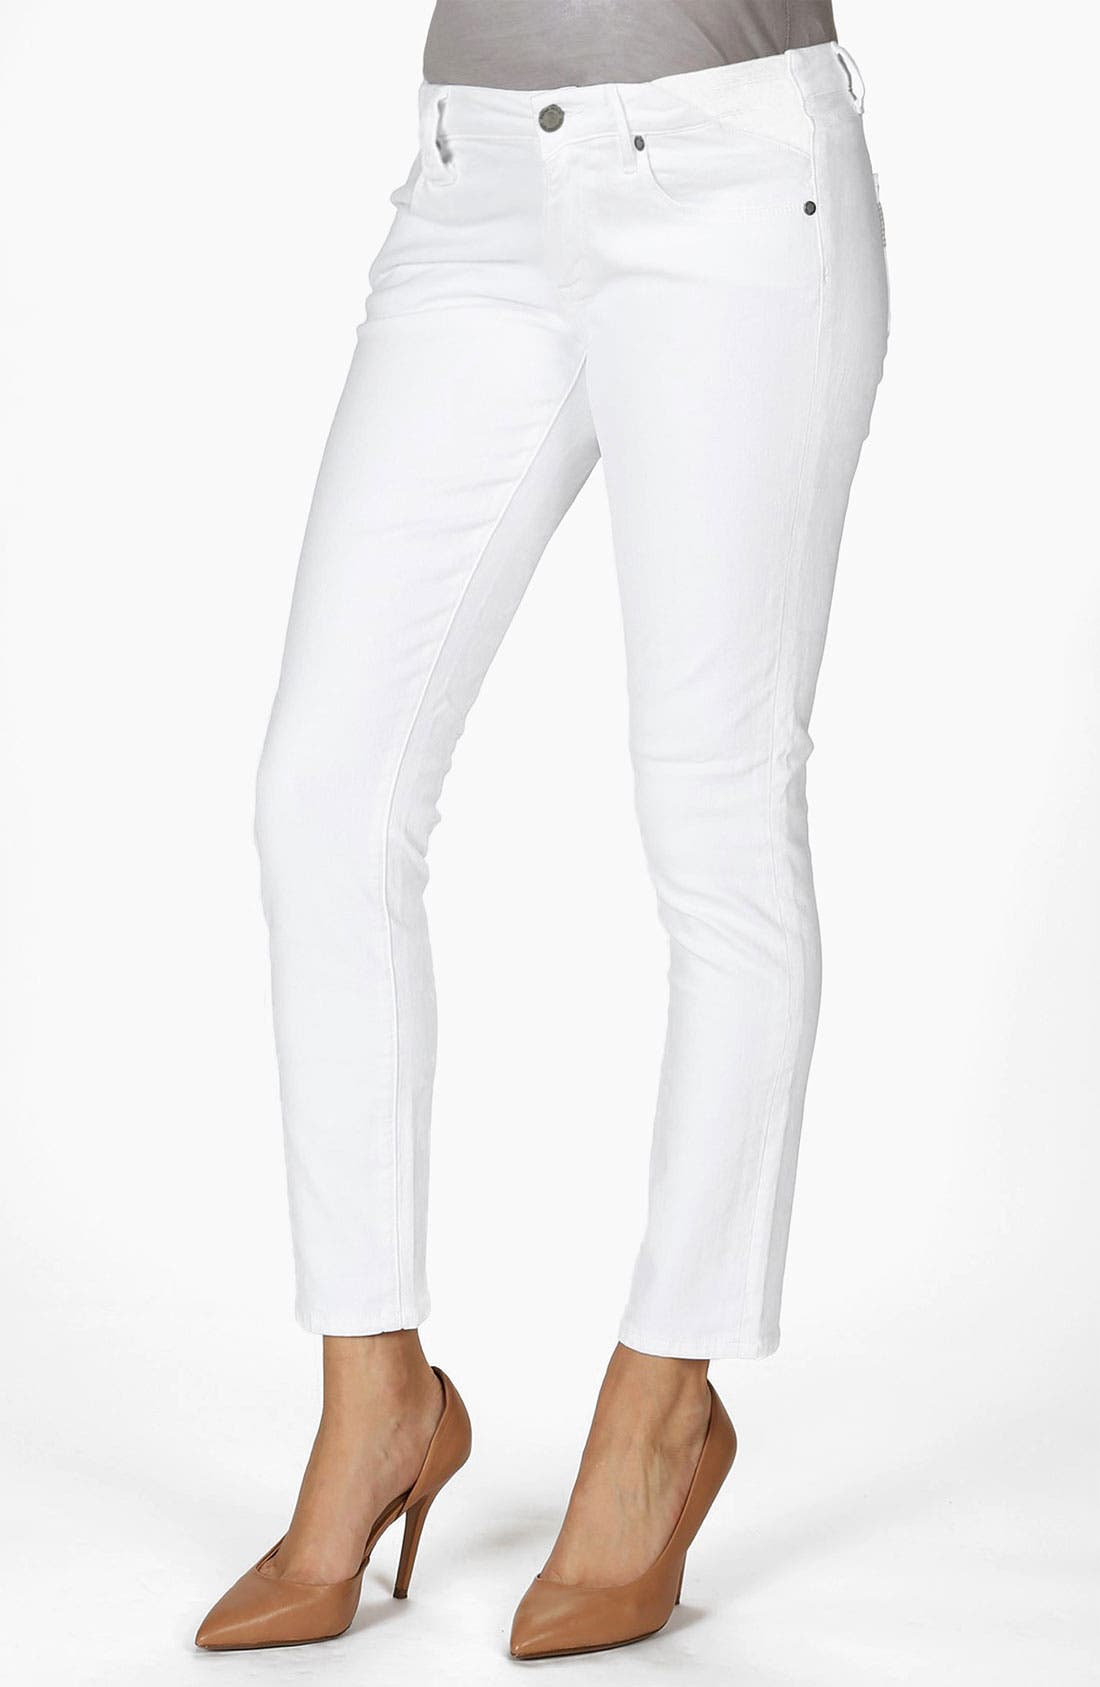 Alternate Image 1 Selected - Paige Denim 'Skyline' Maternity Ankle Skinny Stretch Jeans (Optic White)